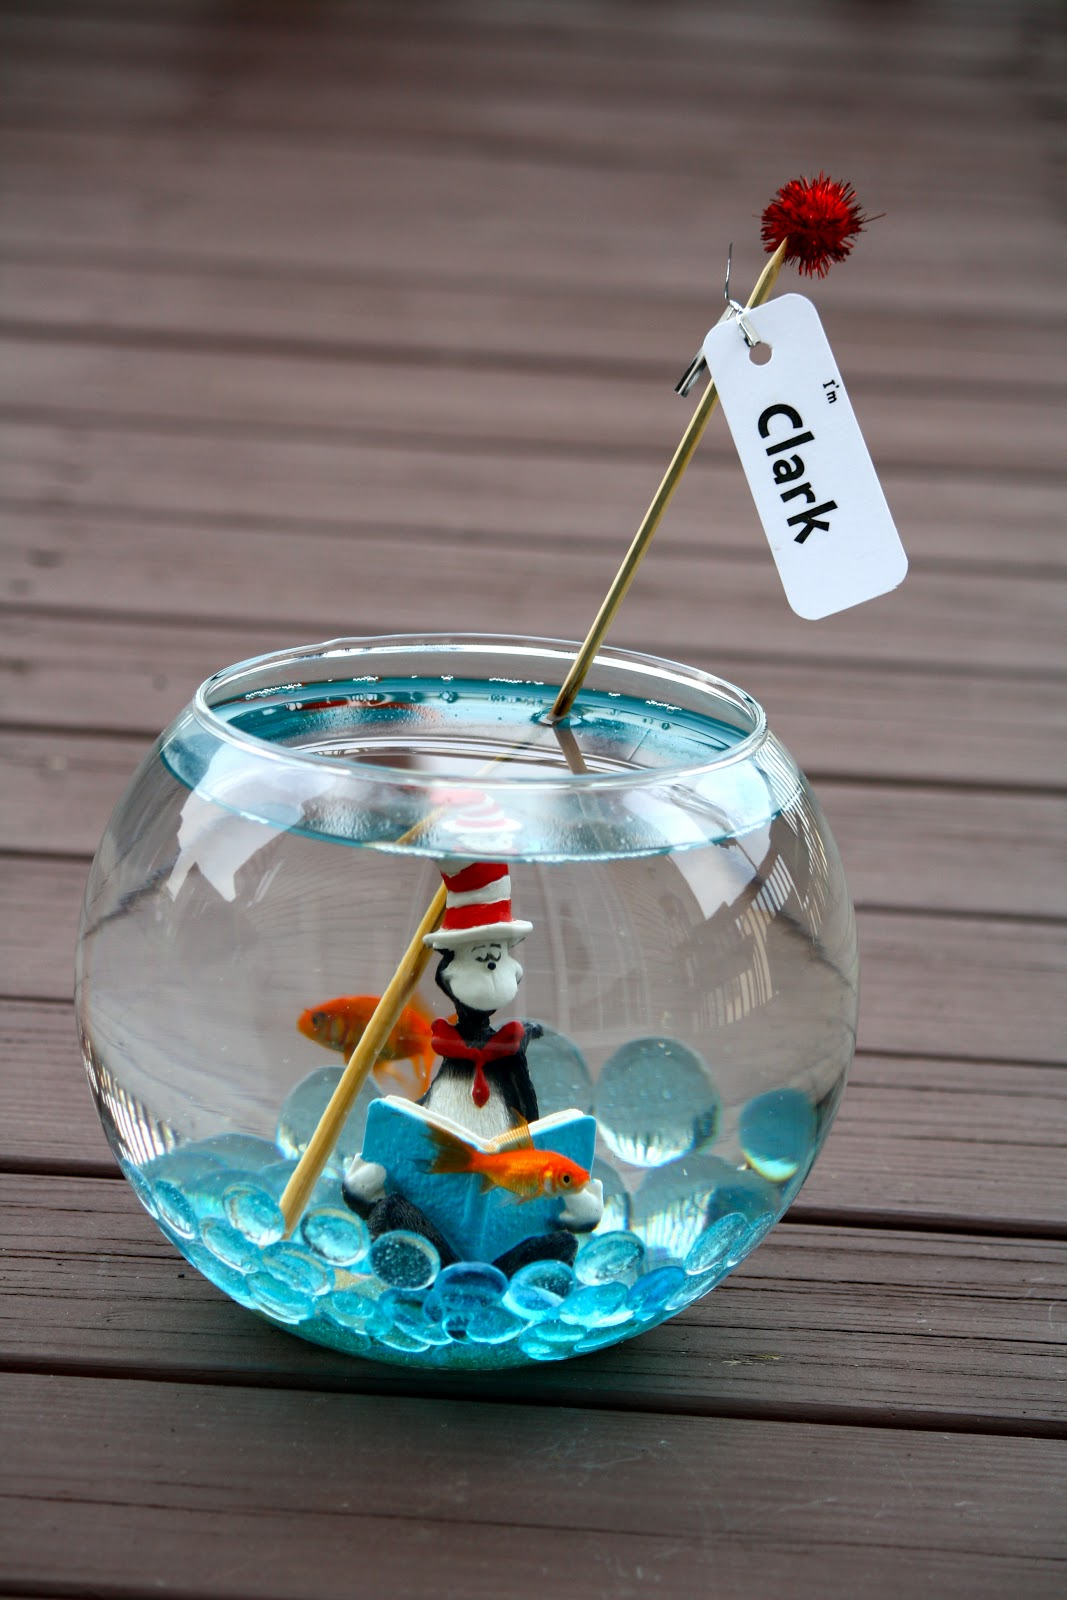 If Anyone Has Read The Cat In Hat Book By Dr Seuss You Should Be All Too Familiar With Responsible Fish Named Clark